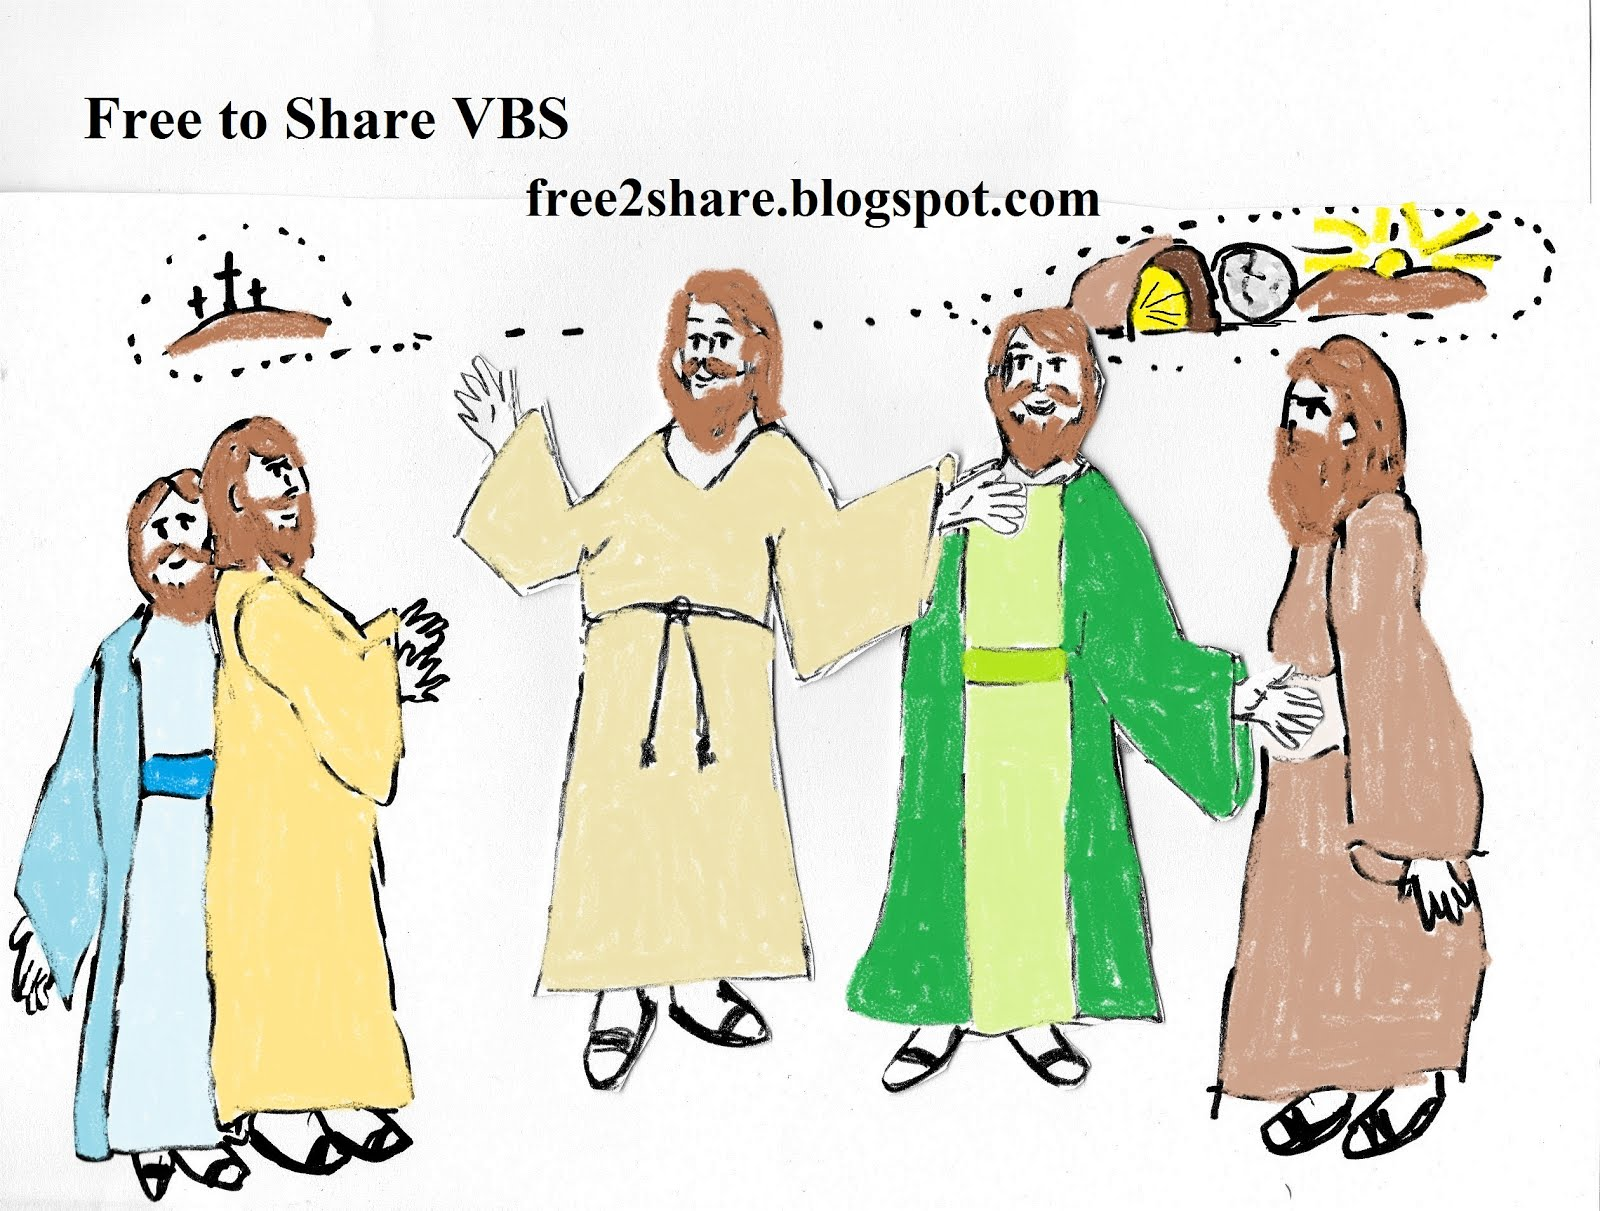 Free to Share VBS [Curriculum]